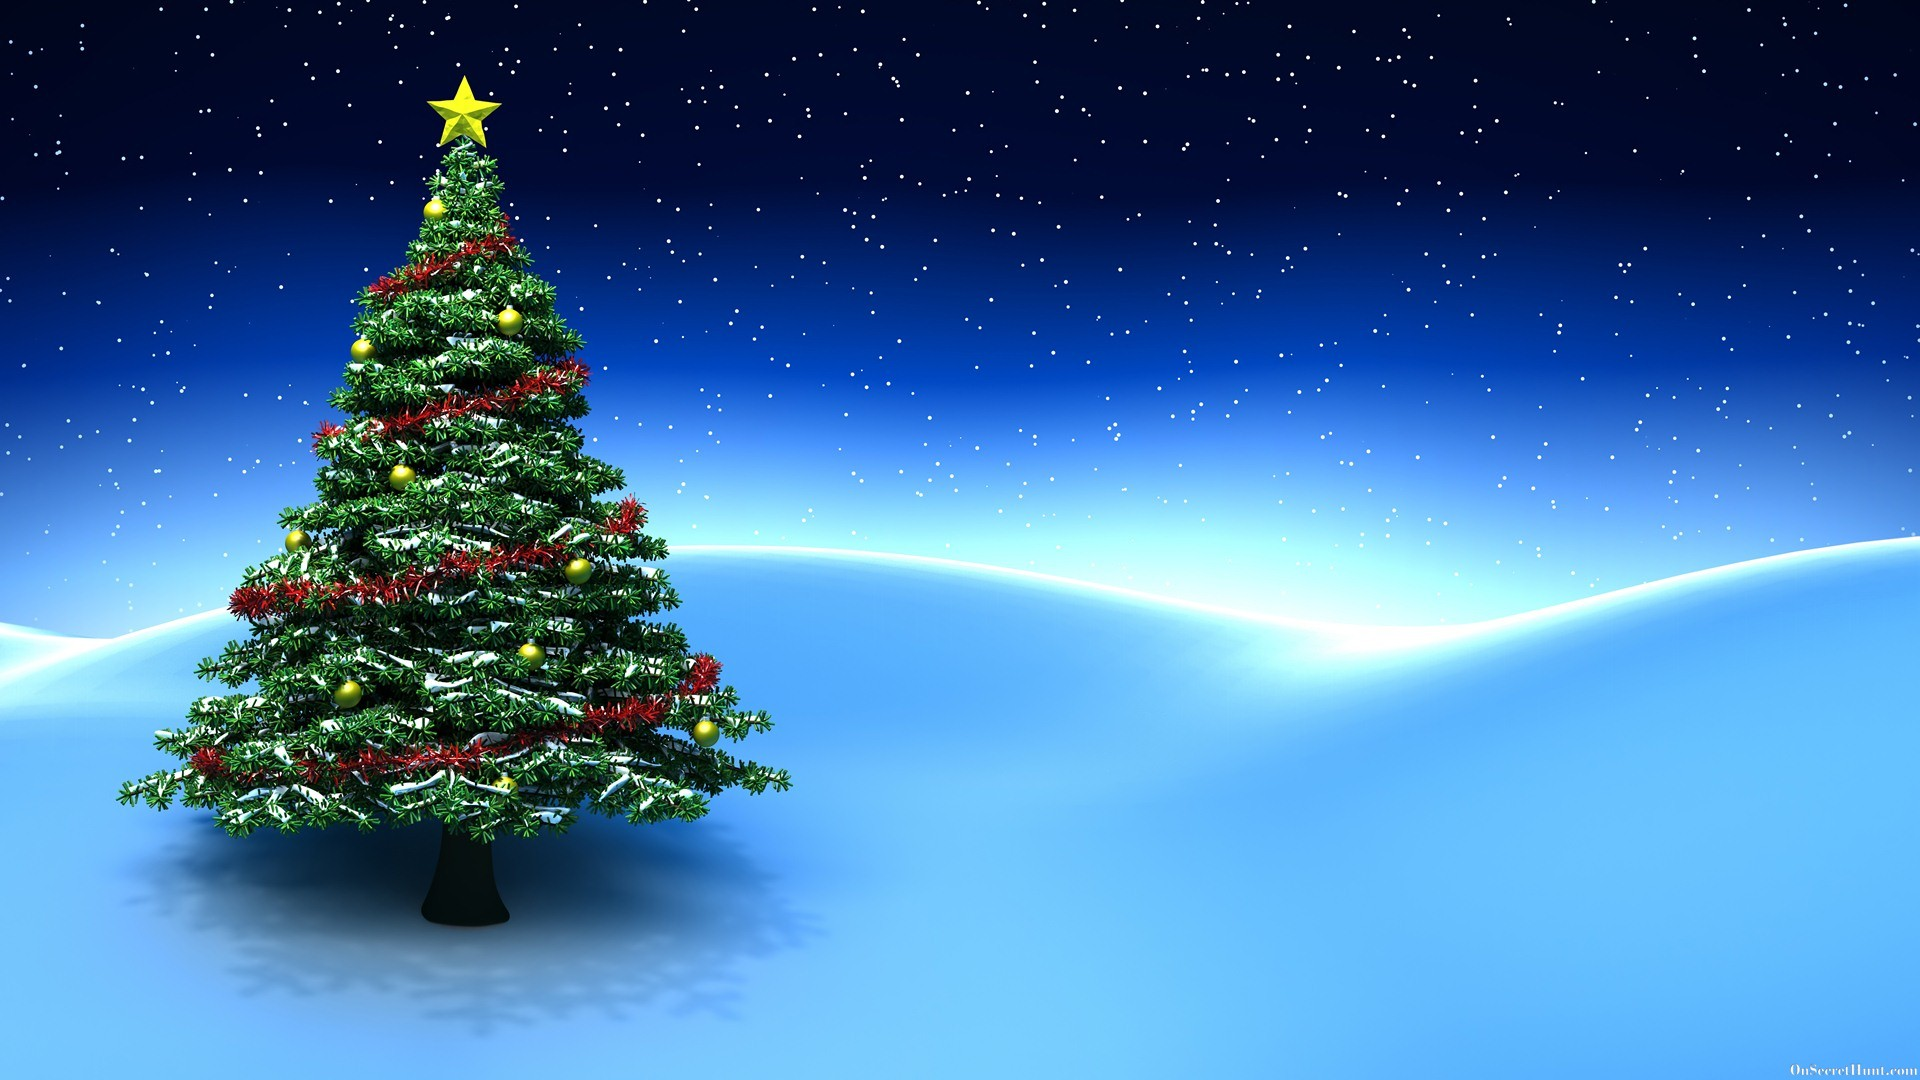 Weihnachtsbilder 3d.76 Christmas Tree Desktop Wallpaper On Wallpapersafari